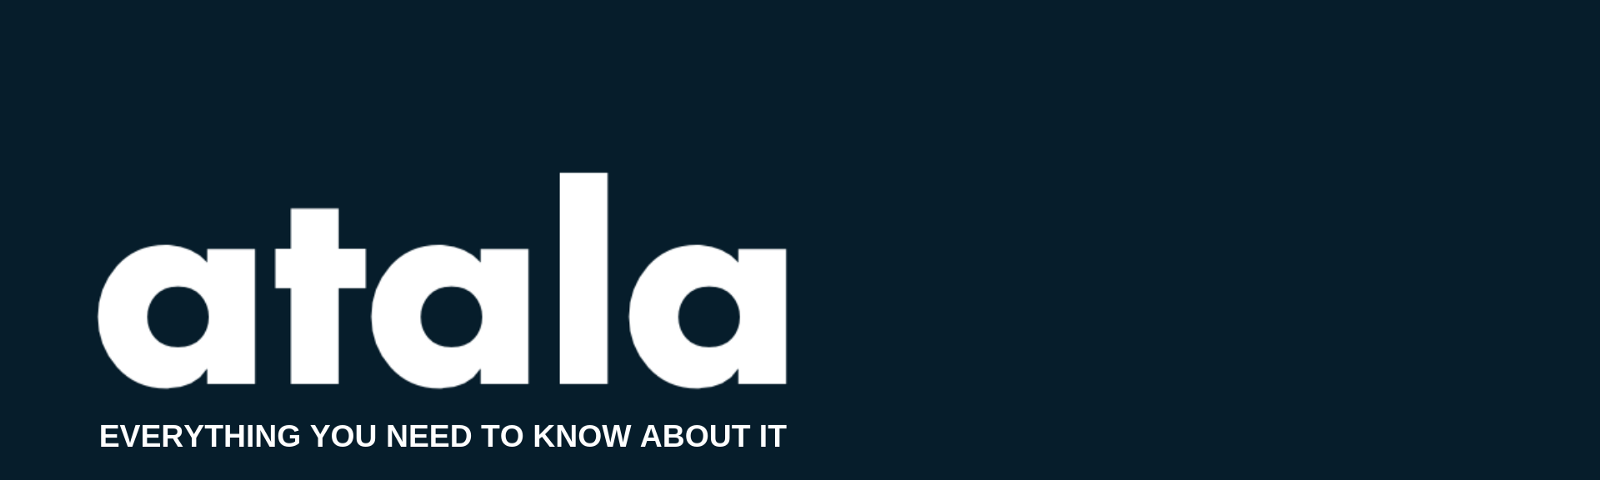 Atala, everything you need to know about it. Written by Max. Medium.com/gerolamo. Gerolamo.